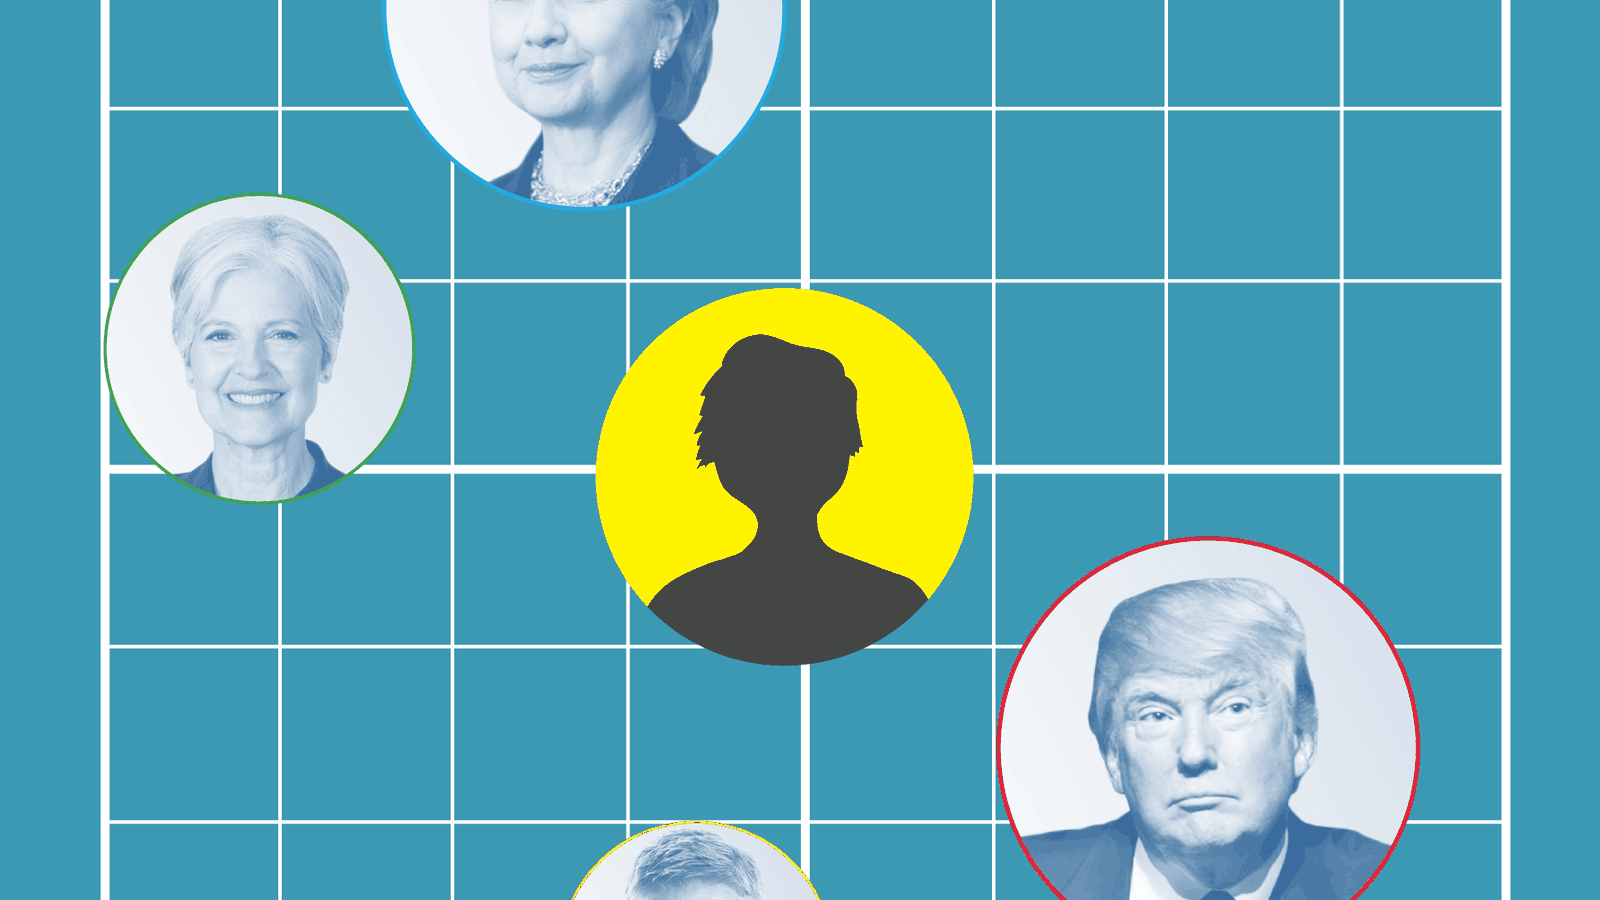 This How Vote Compass Compares You The Presidential Candidates Political Ideology Vox